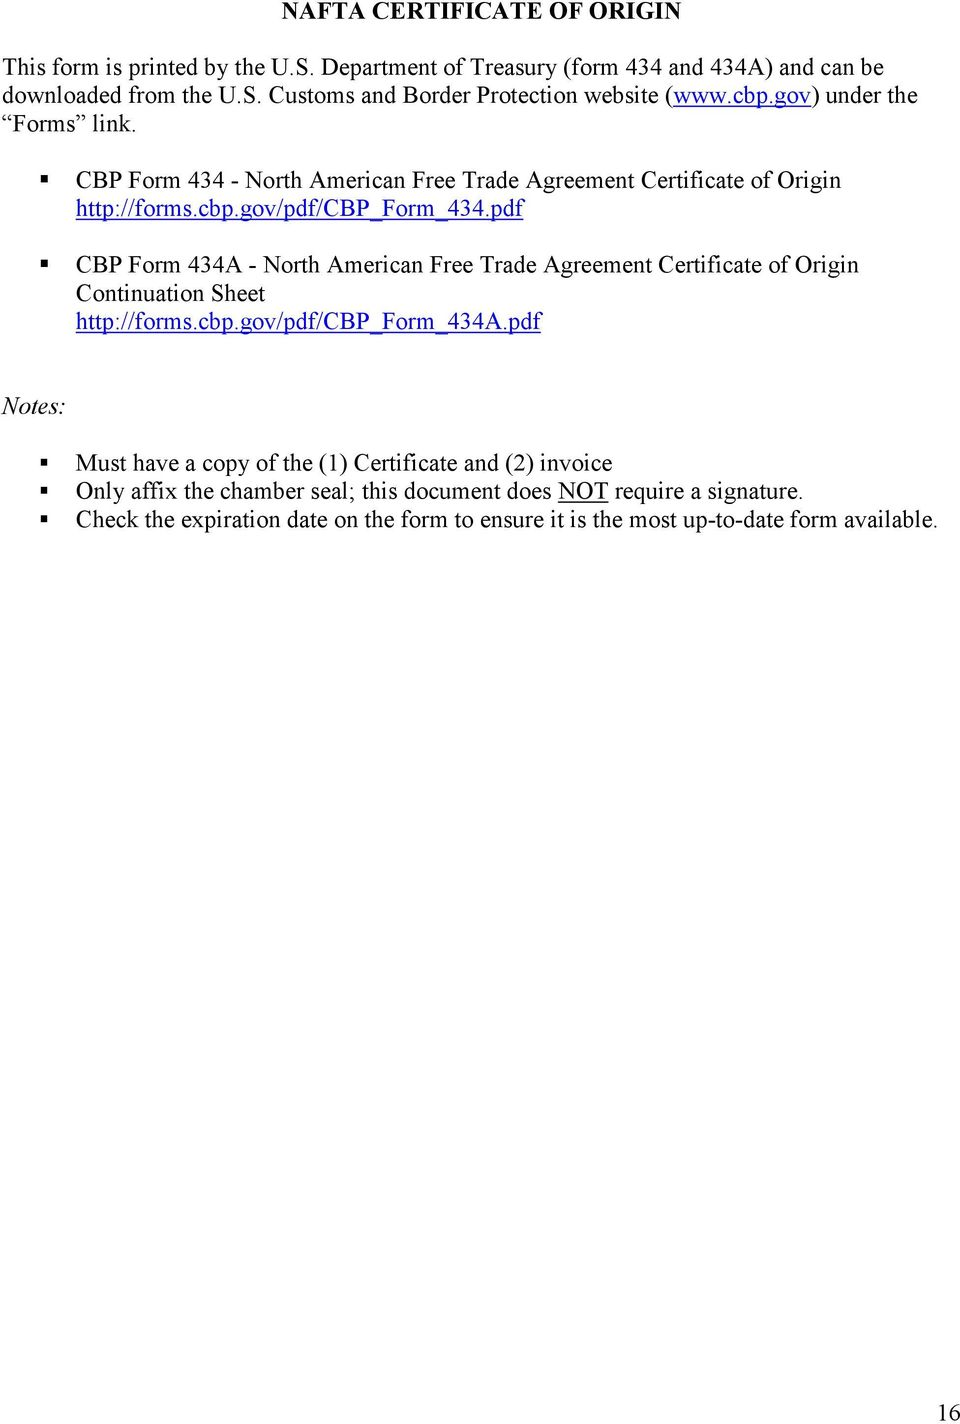 pdf CBP Form 434A - North American Free Trade Agreement Certificate of Origin Continuation Sheet http://forms.cbp.gov/pdf/cbp_form_434a.